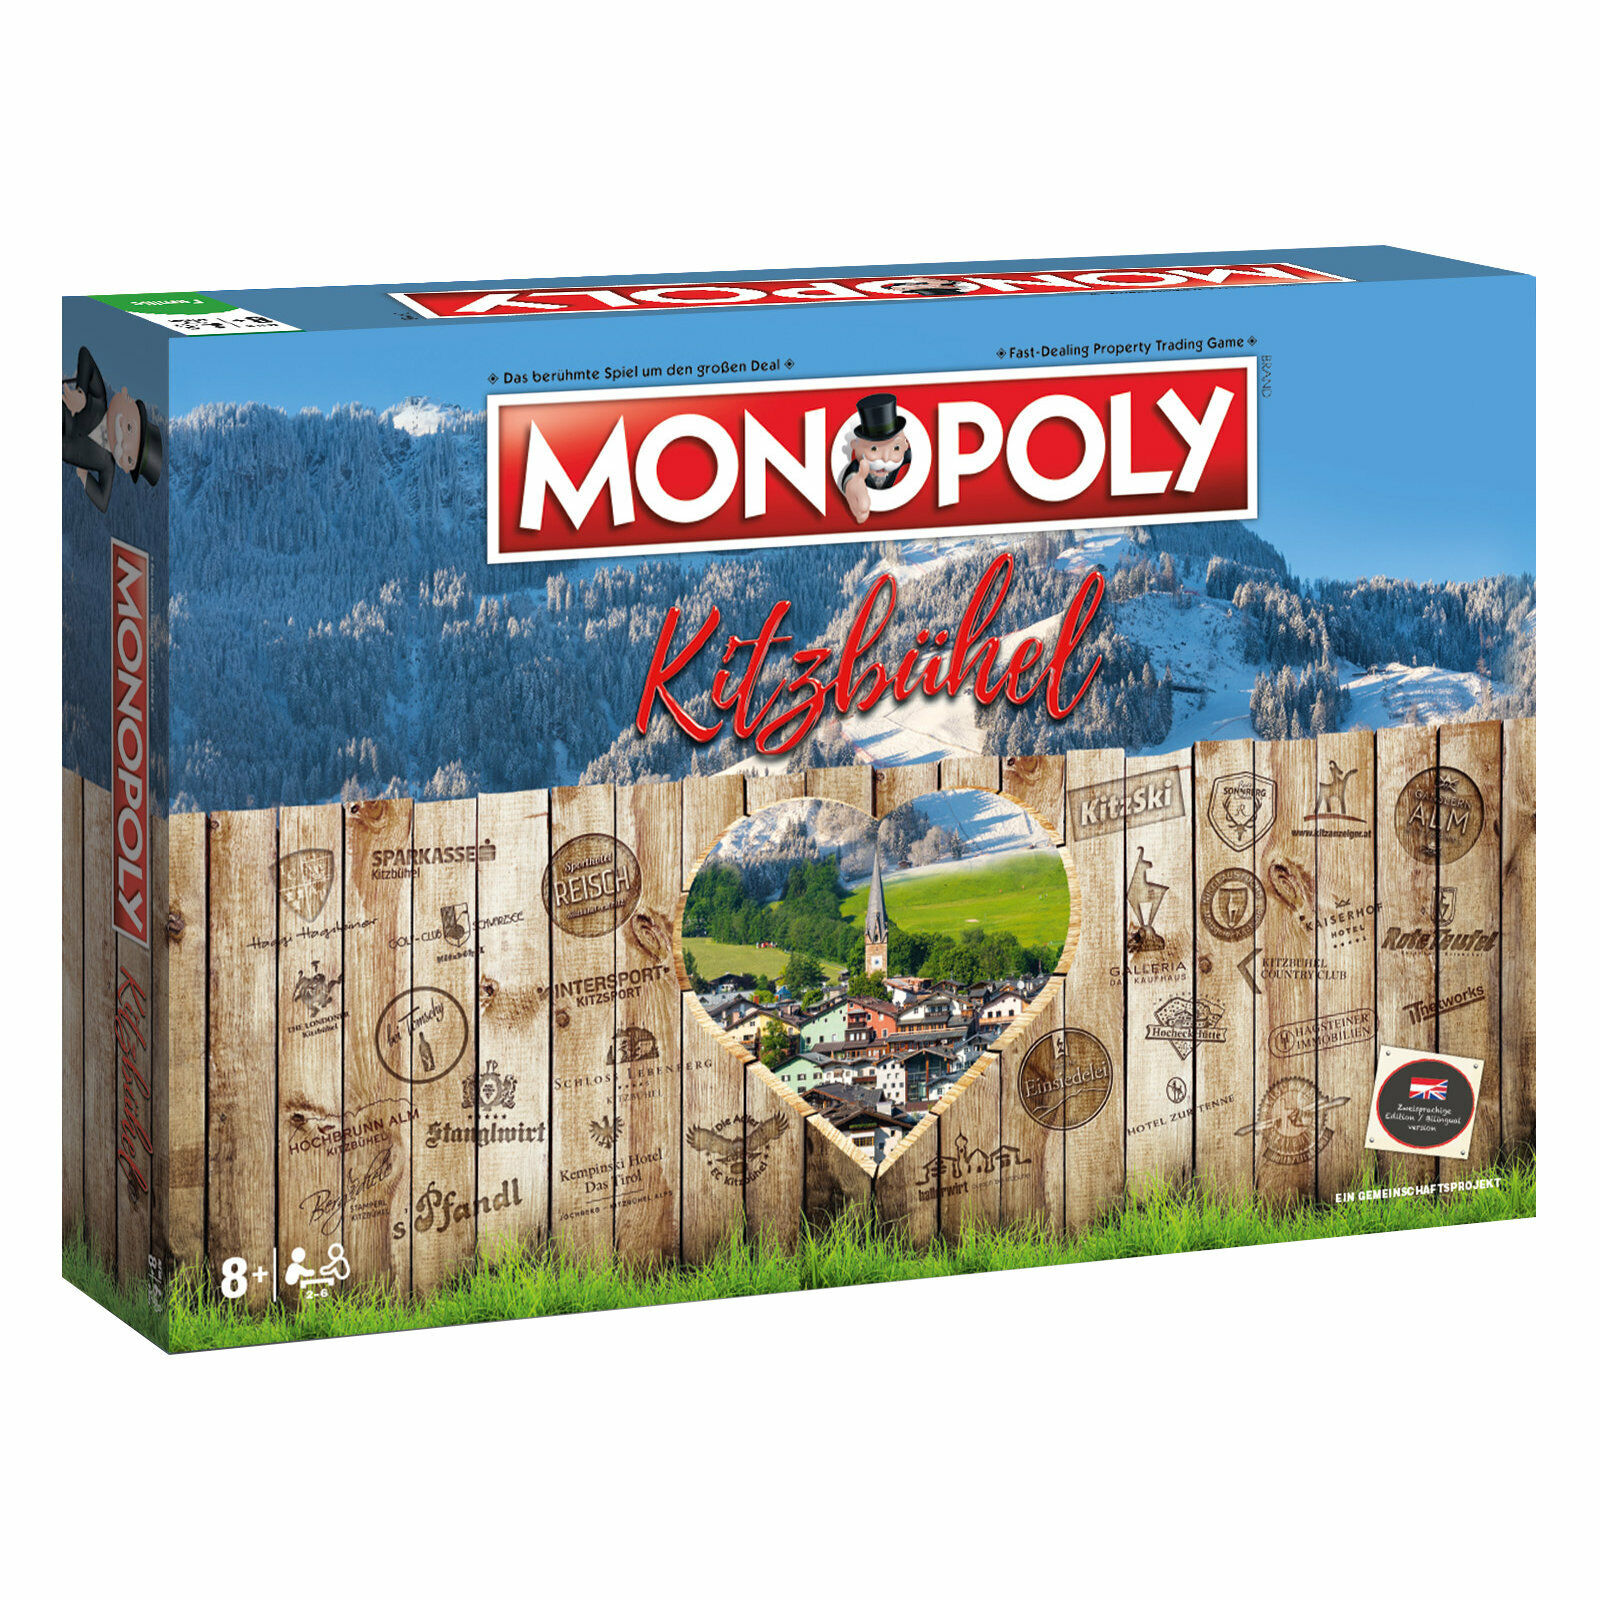 Monopoly kitzbühel city game stadtedition Edition Board Game Board Game